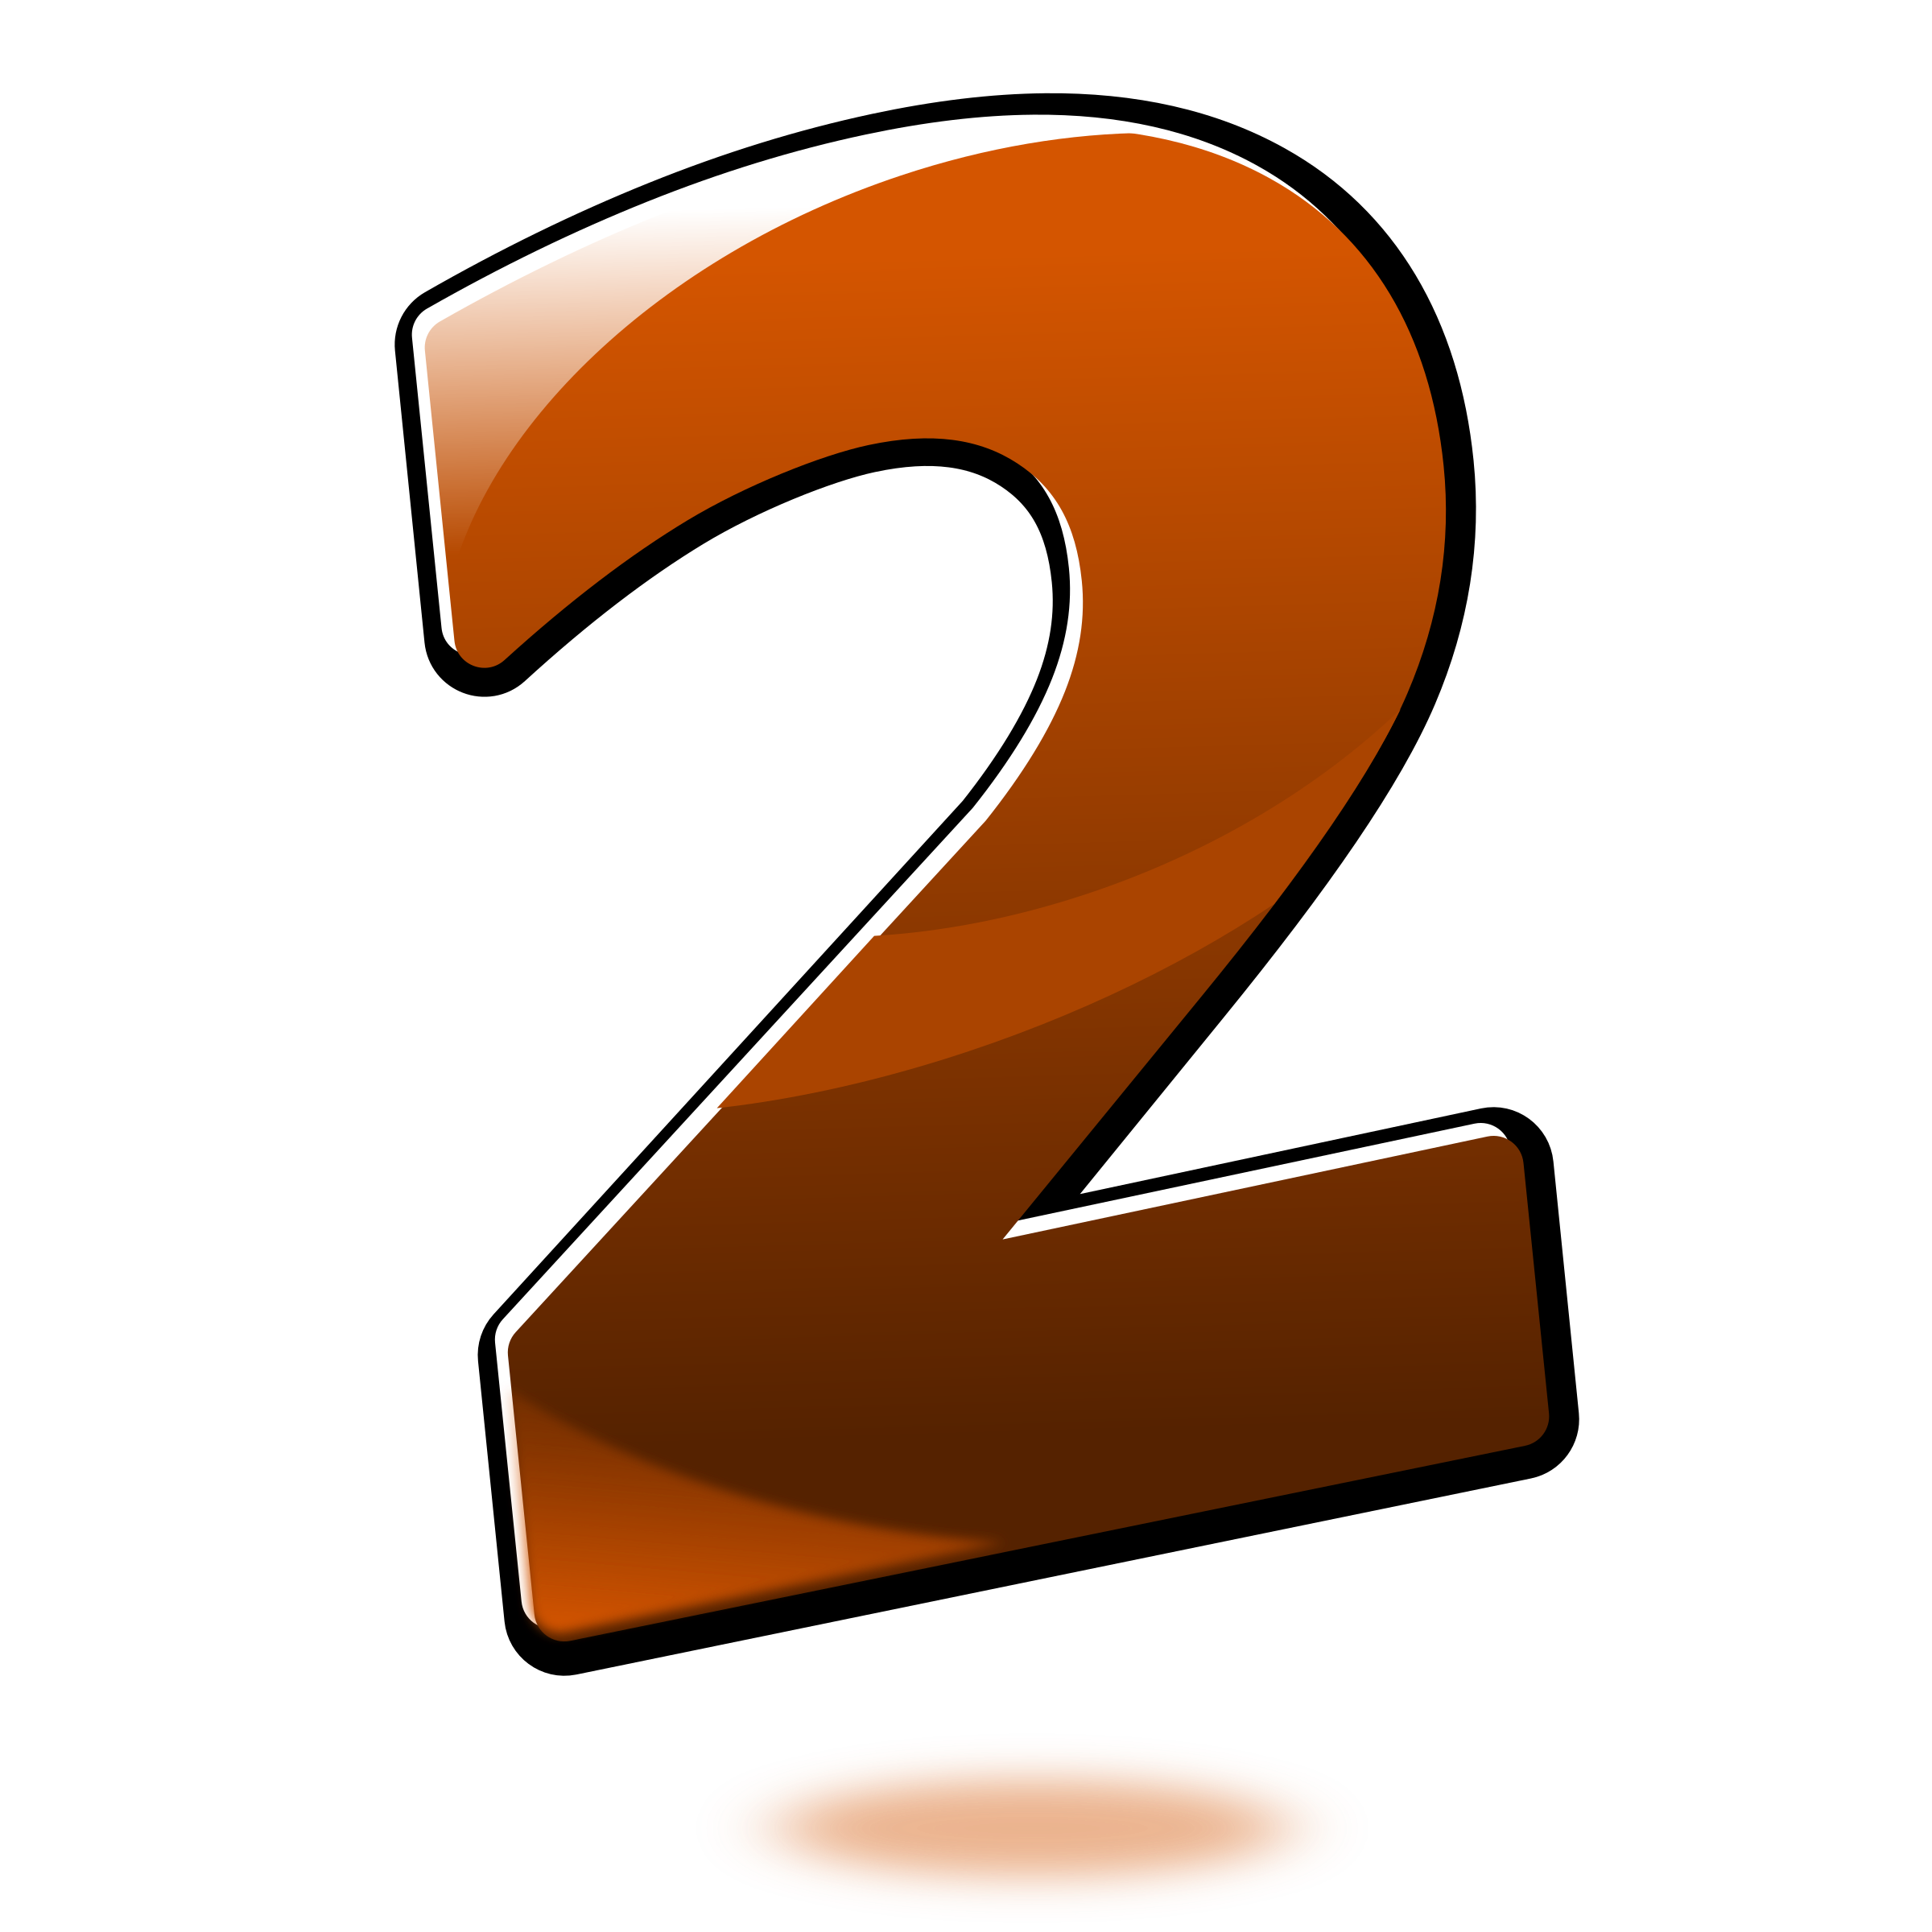 Number clipart transparent png.